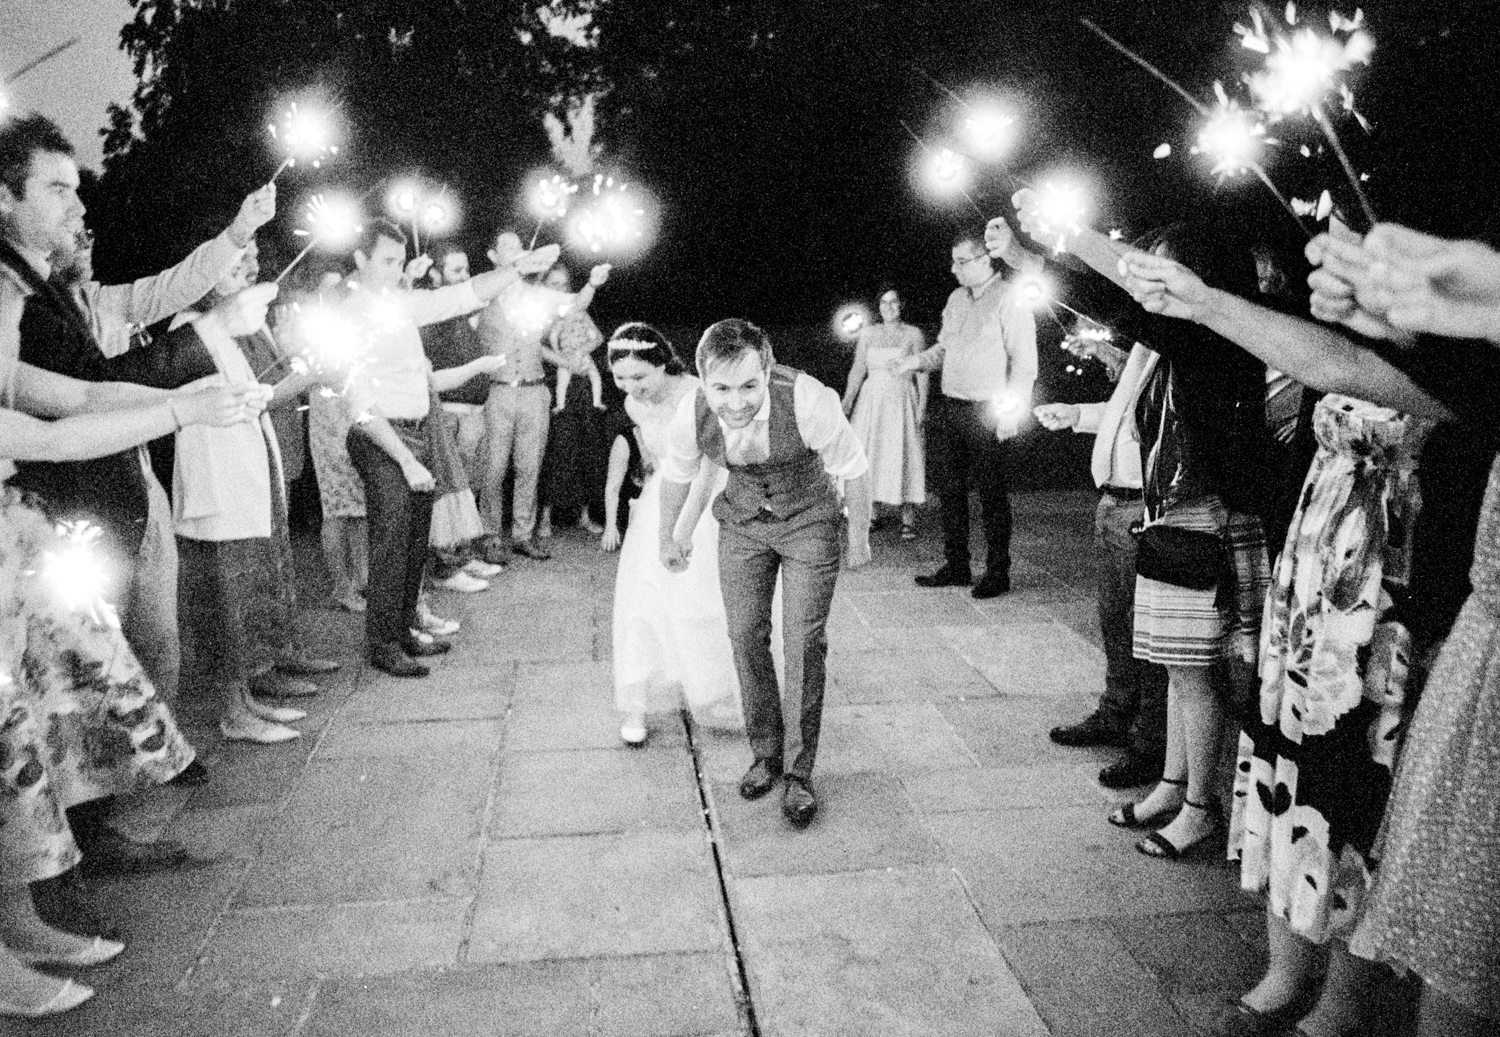 Ilford Delta 3200 For Weddings-30.jpg